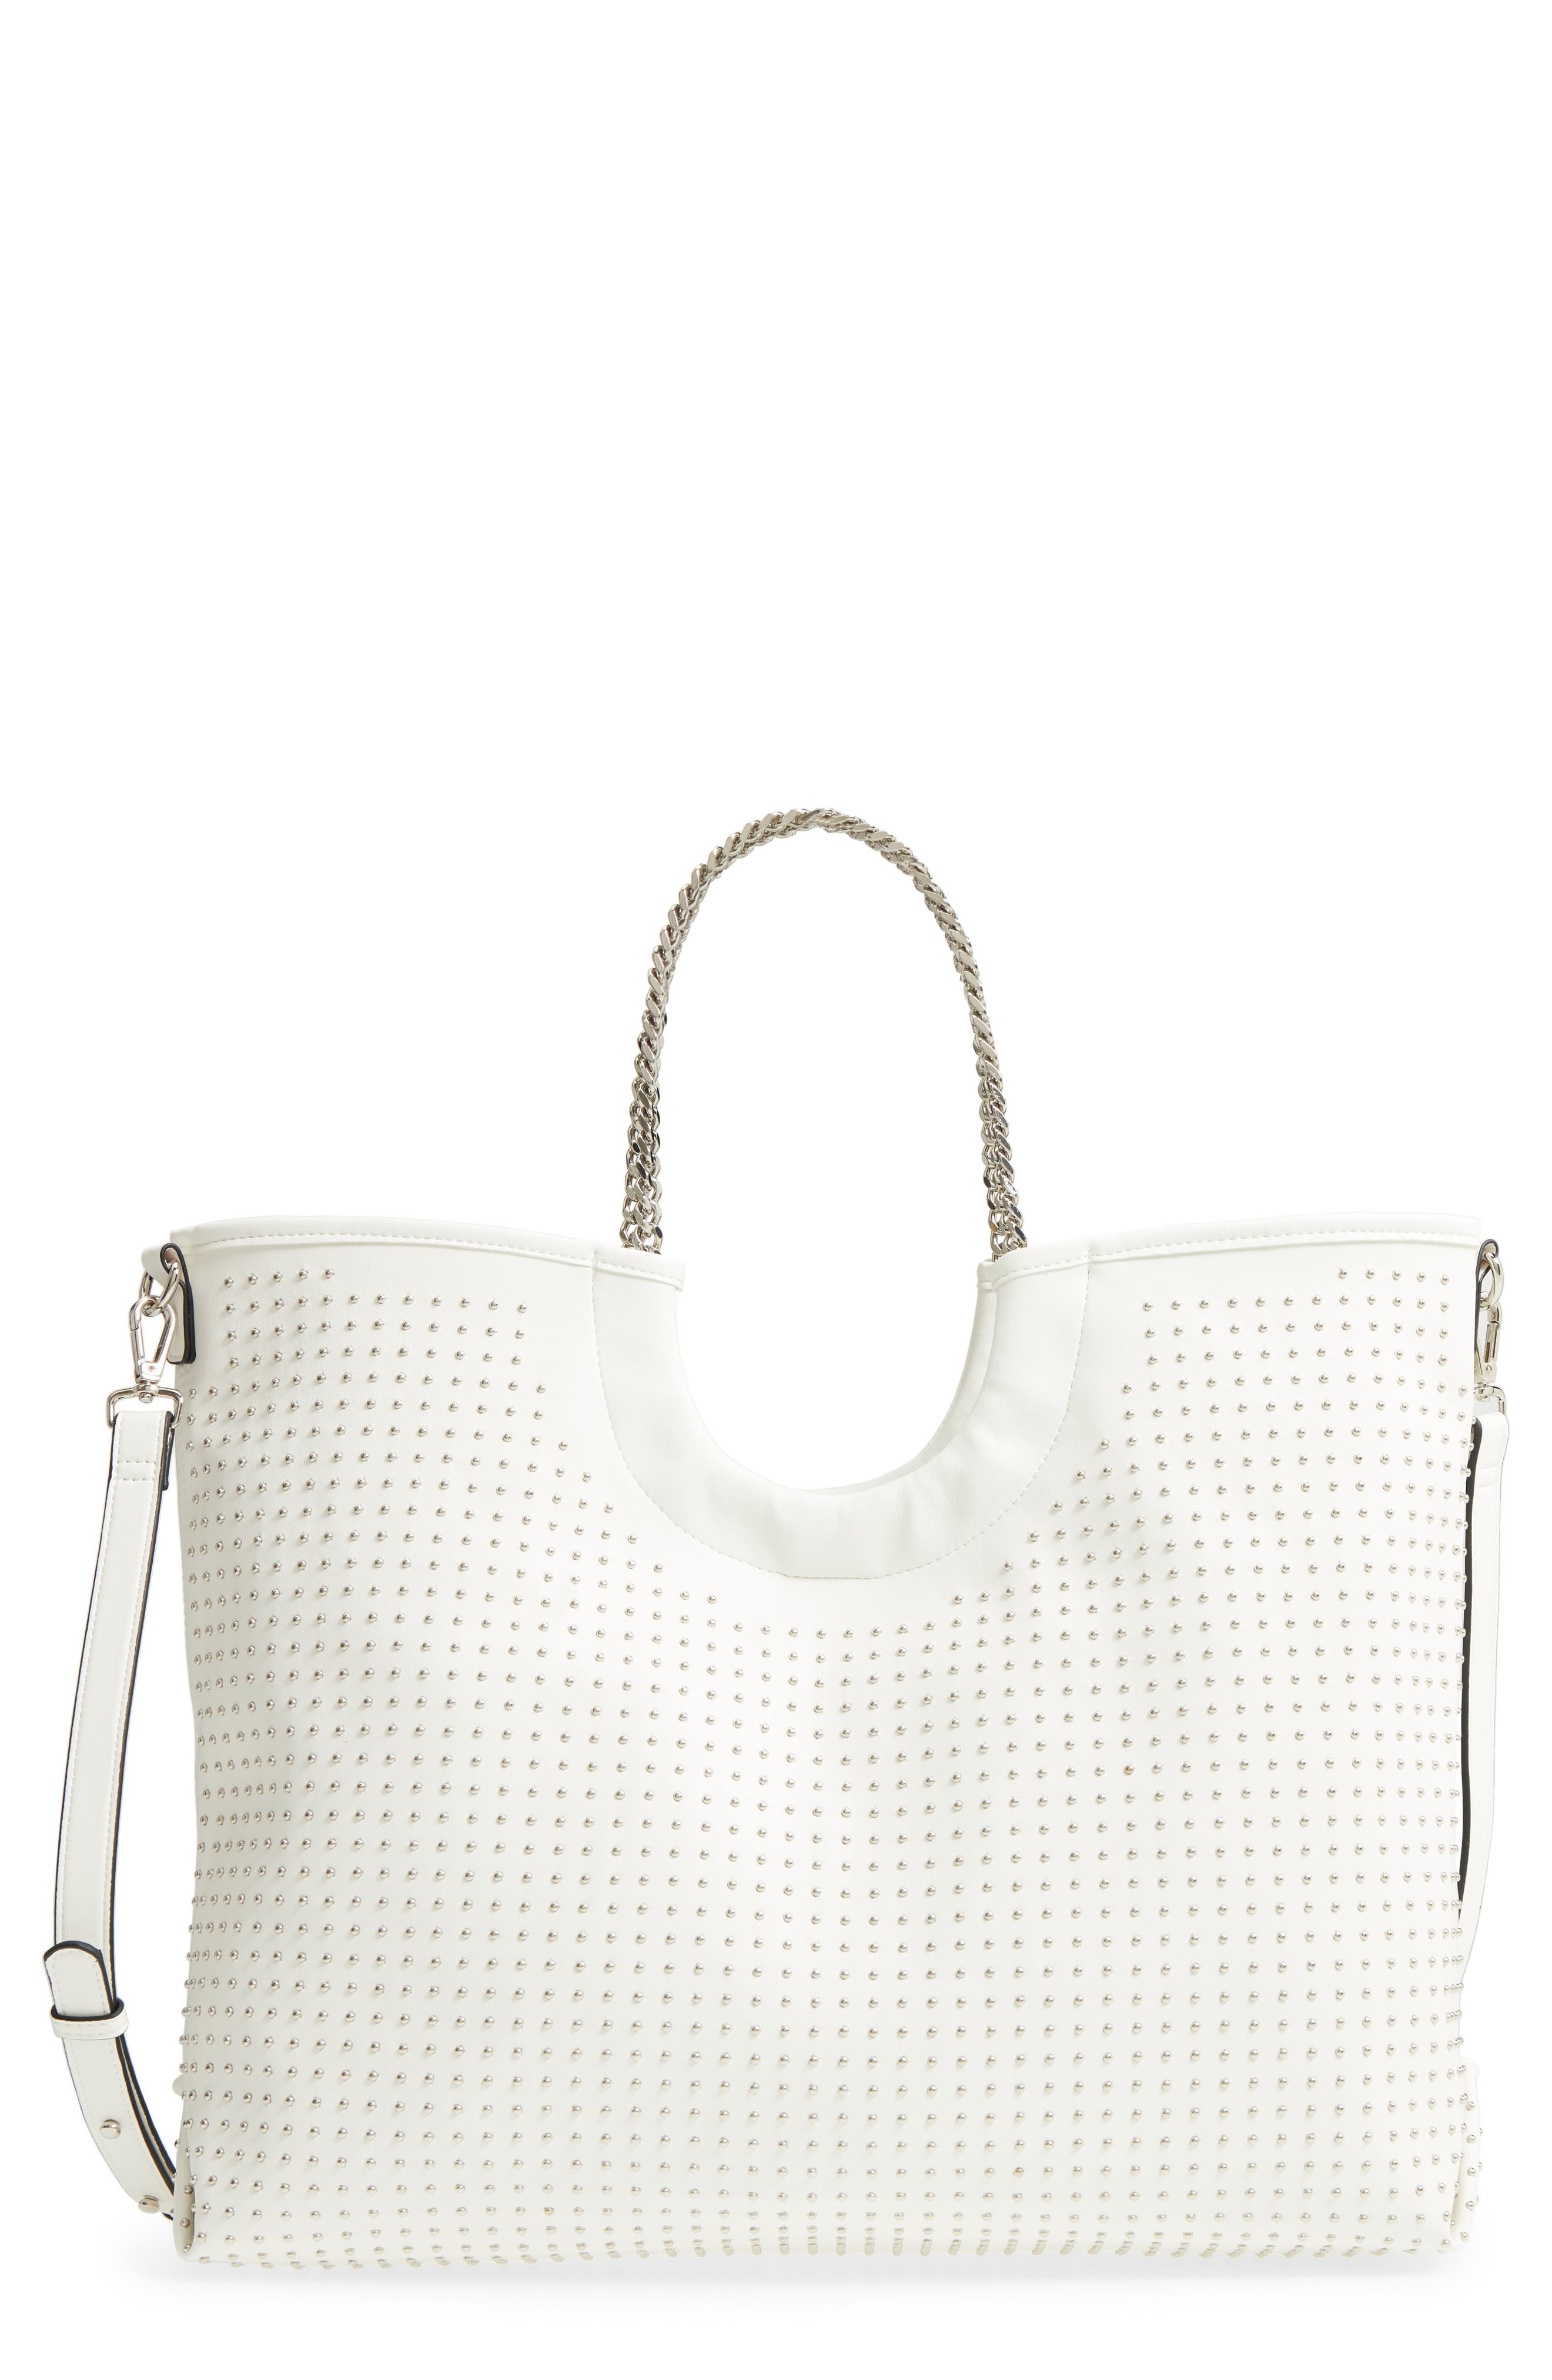 PIN STUD FAUX LEATHER TOTE - WHITE